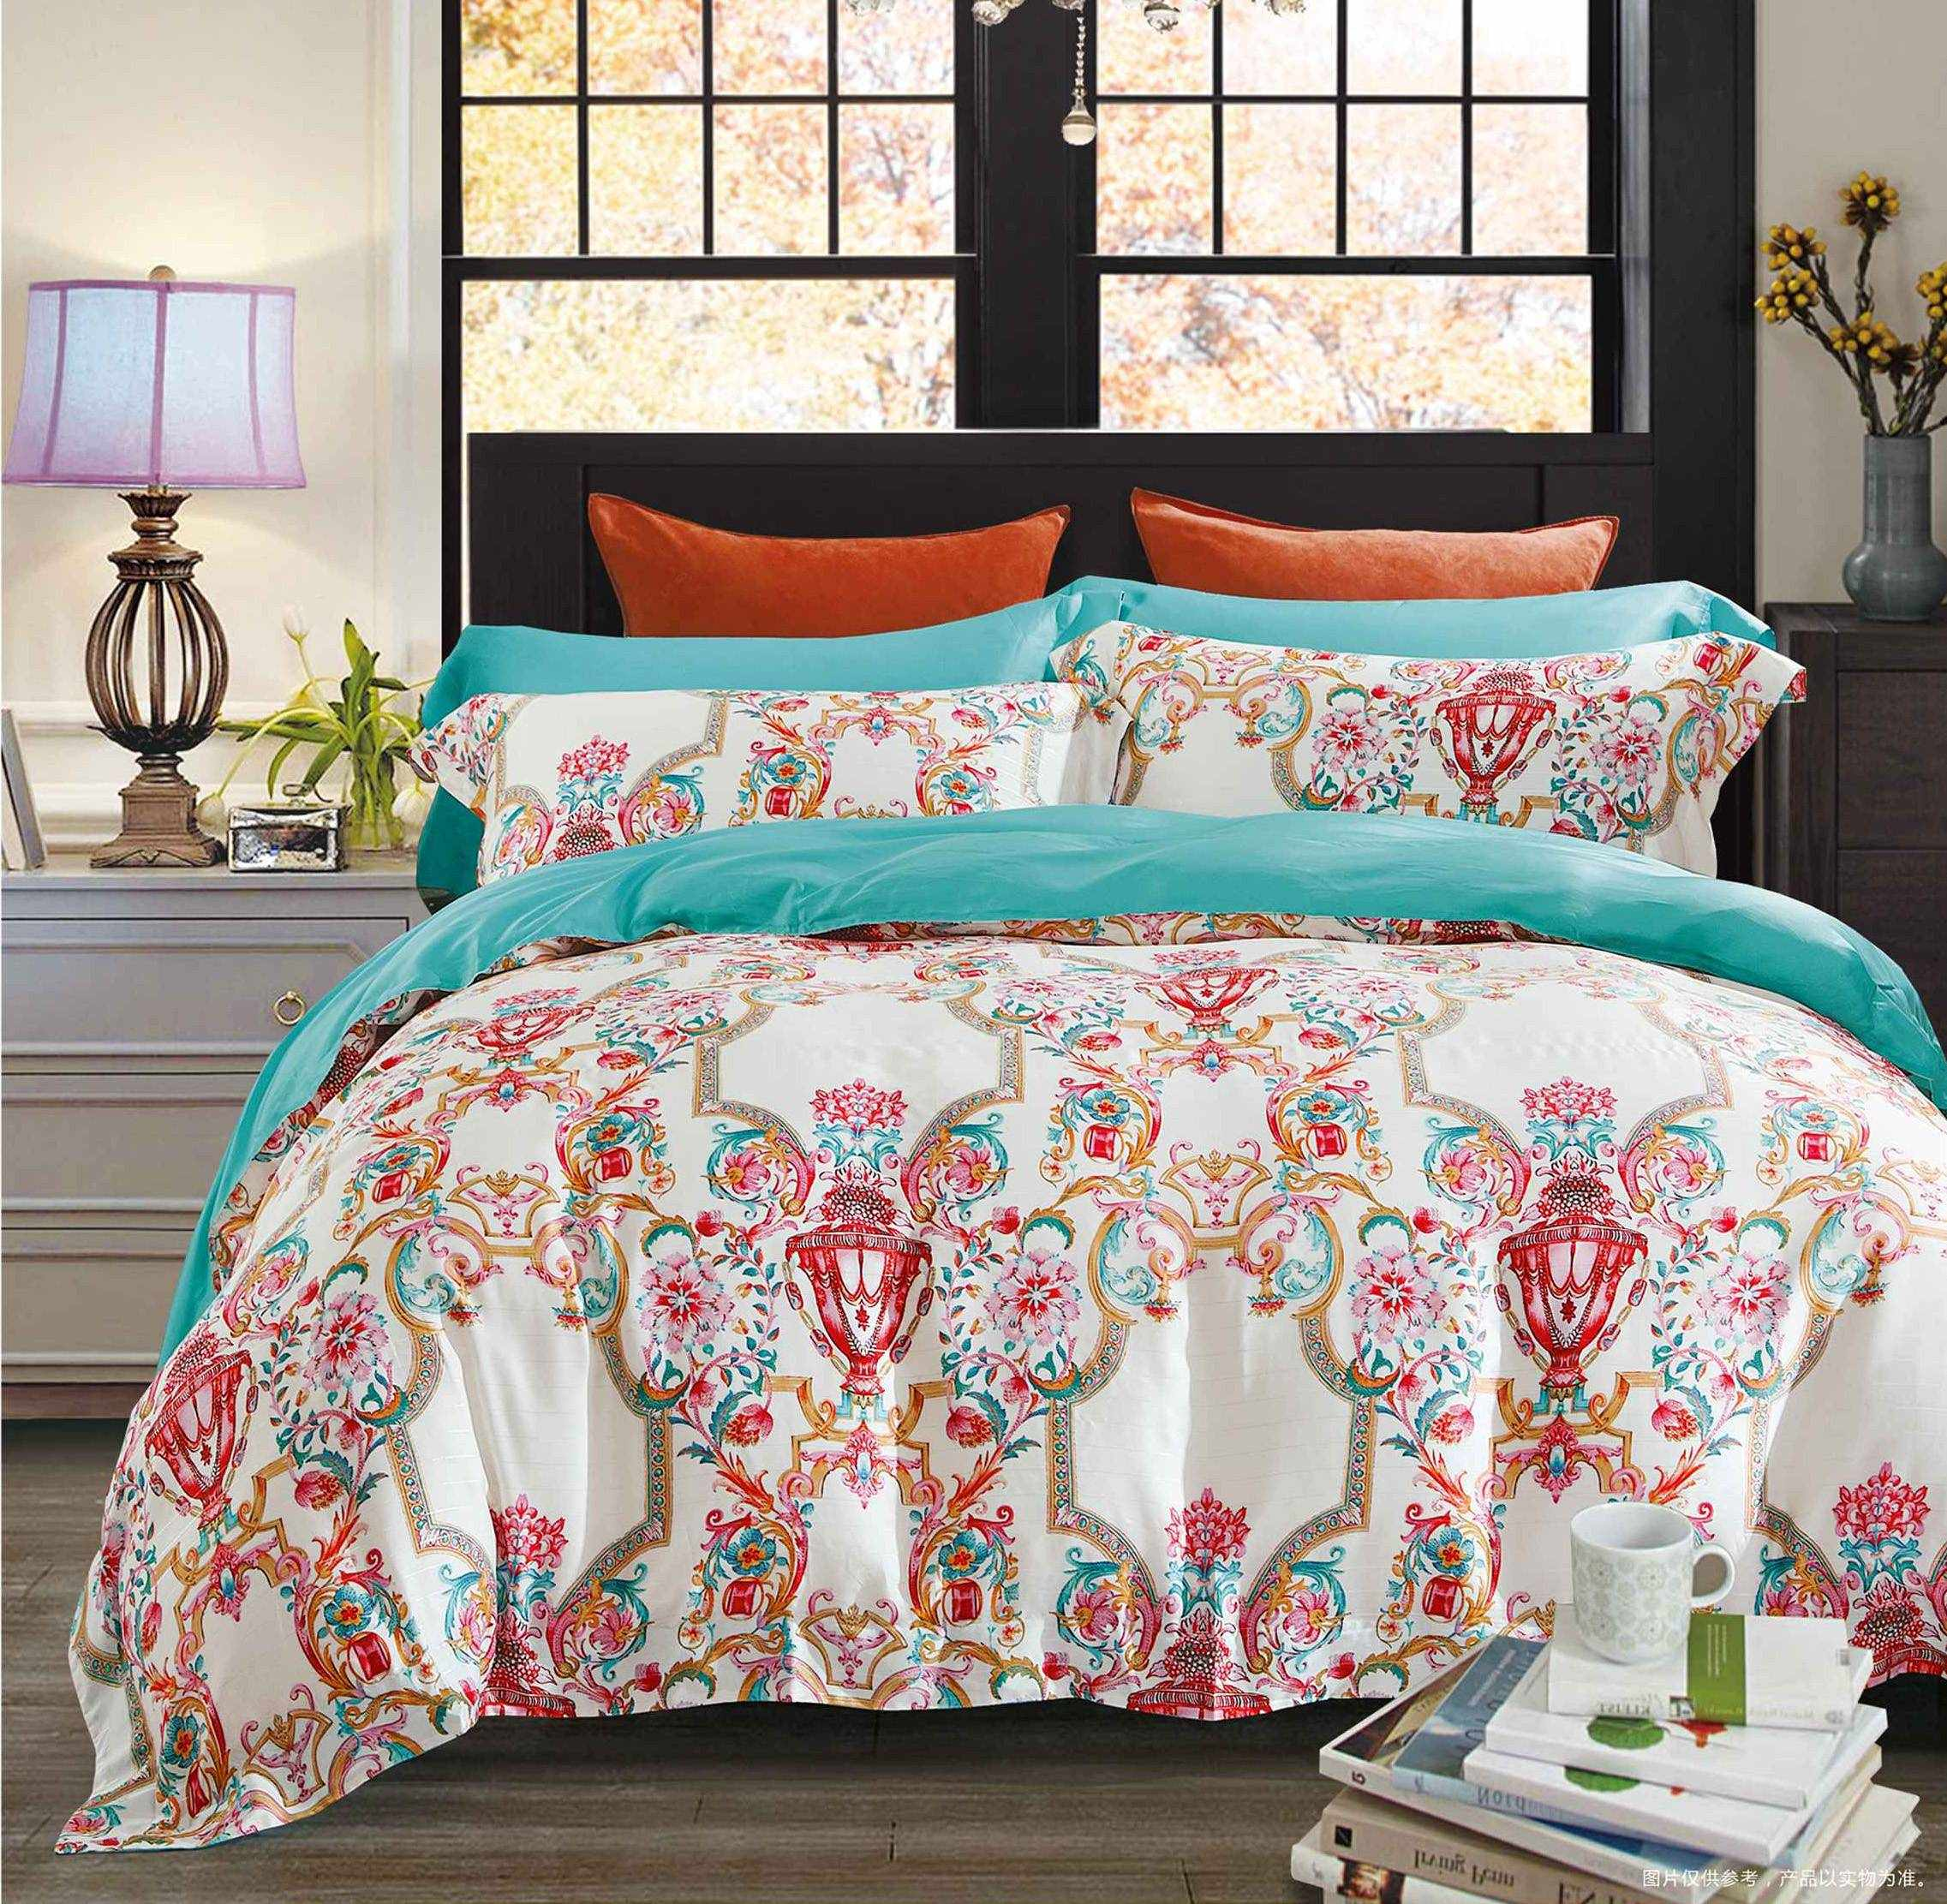 Daphne Sophisticated Design Lyocell Bedding Product Made in China 170757 Other Material Printed image9